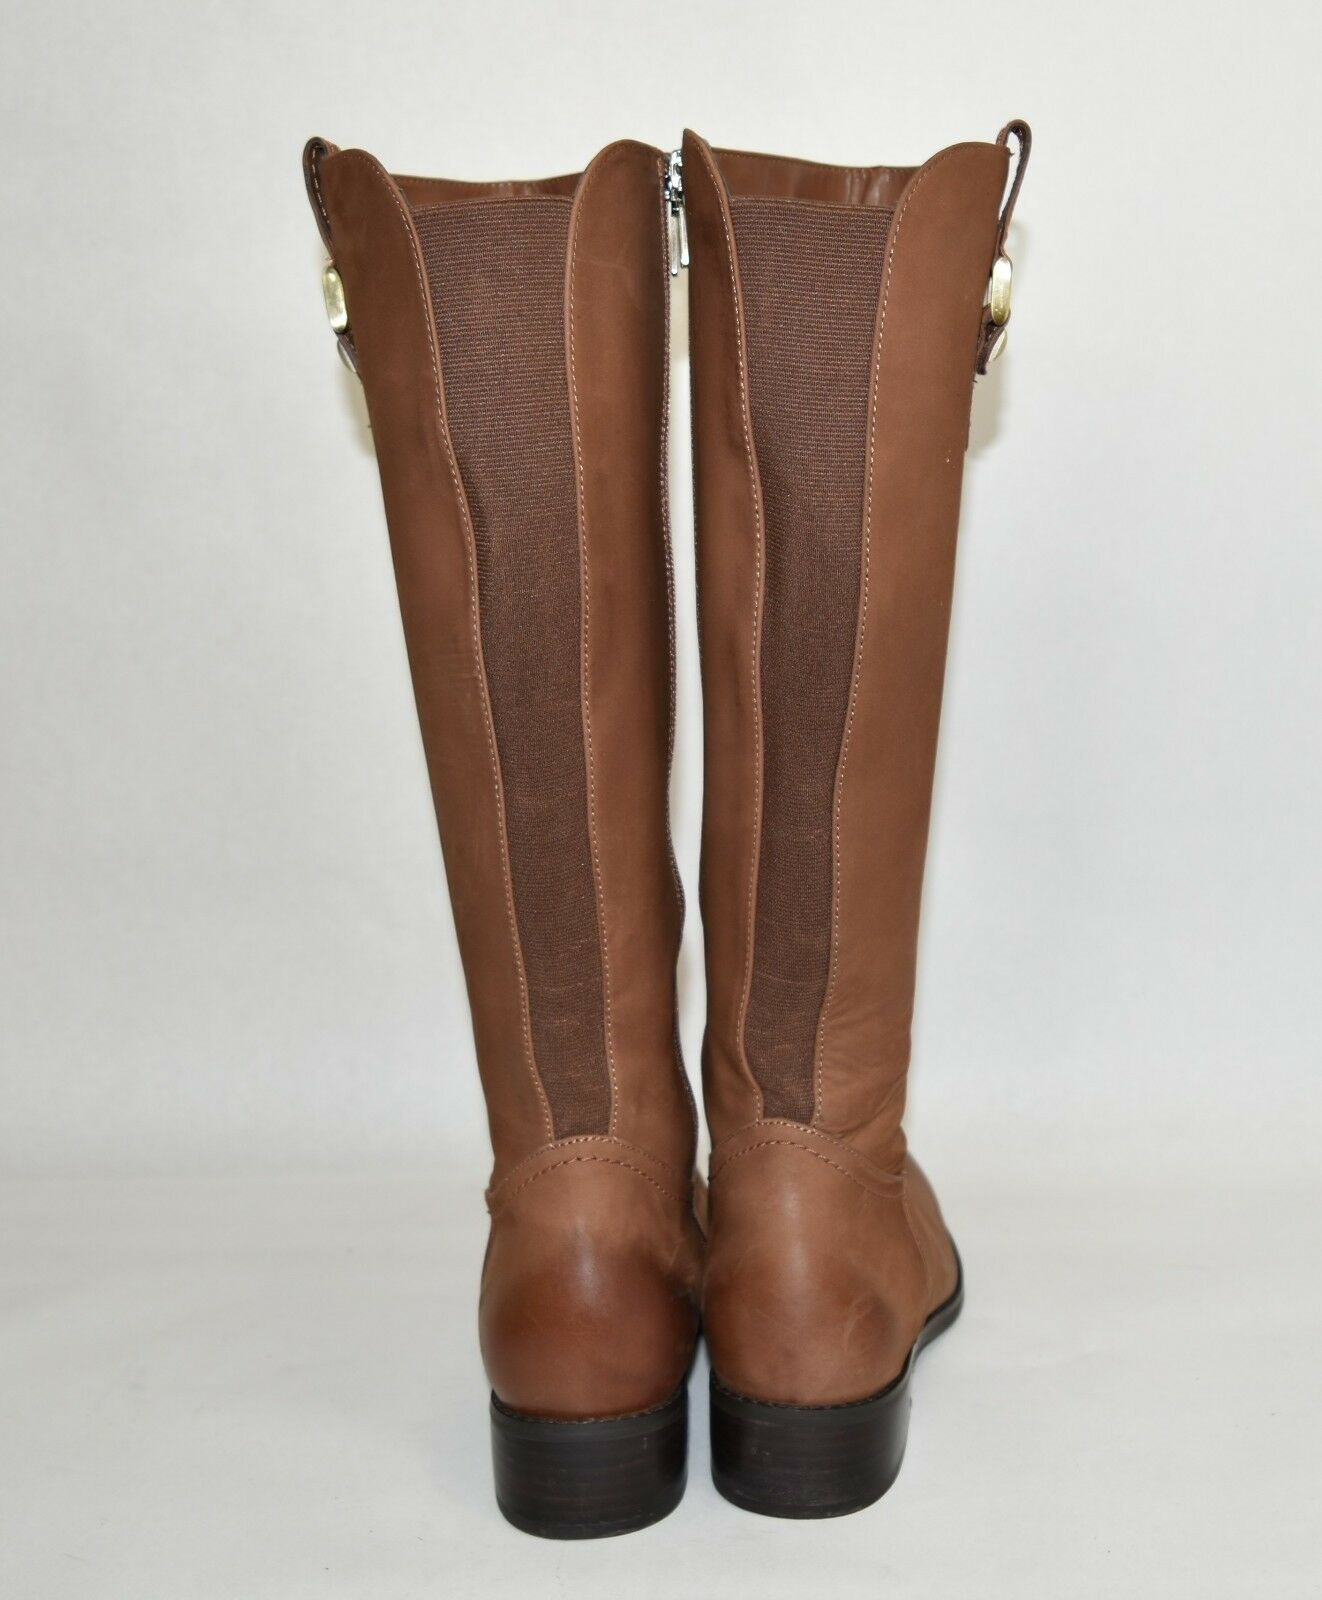 Blondo Blondo Blondo 'Velvet' Waterproof Riding Boot Cognac Nubuck Leather B5125 Size 10 839dc3